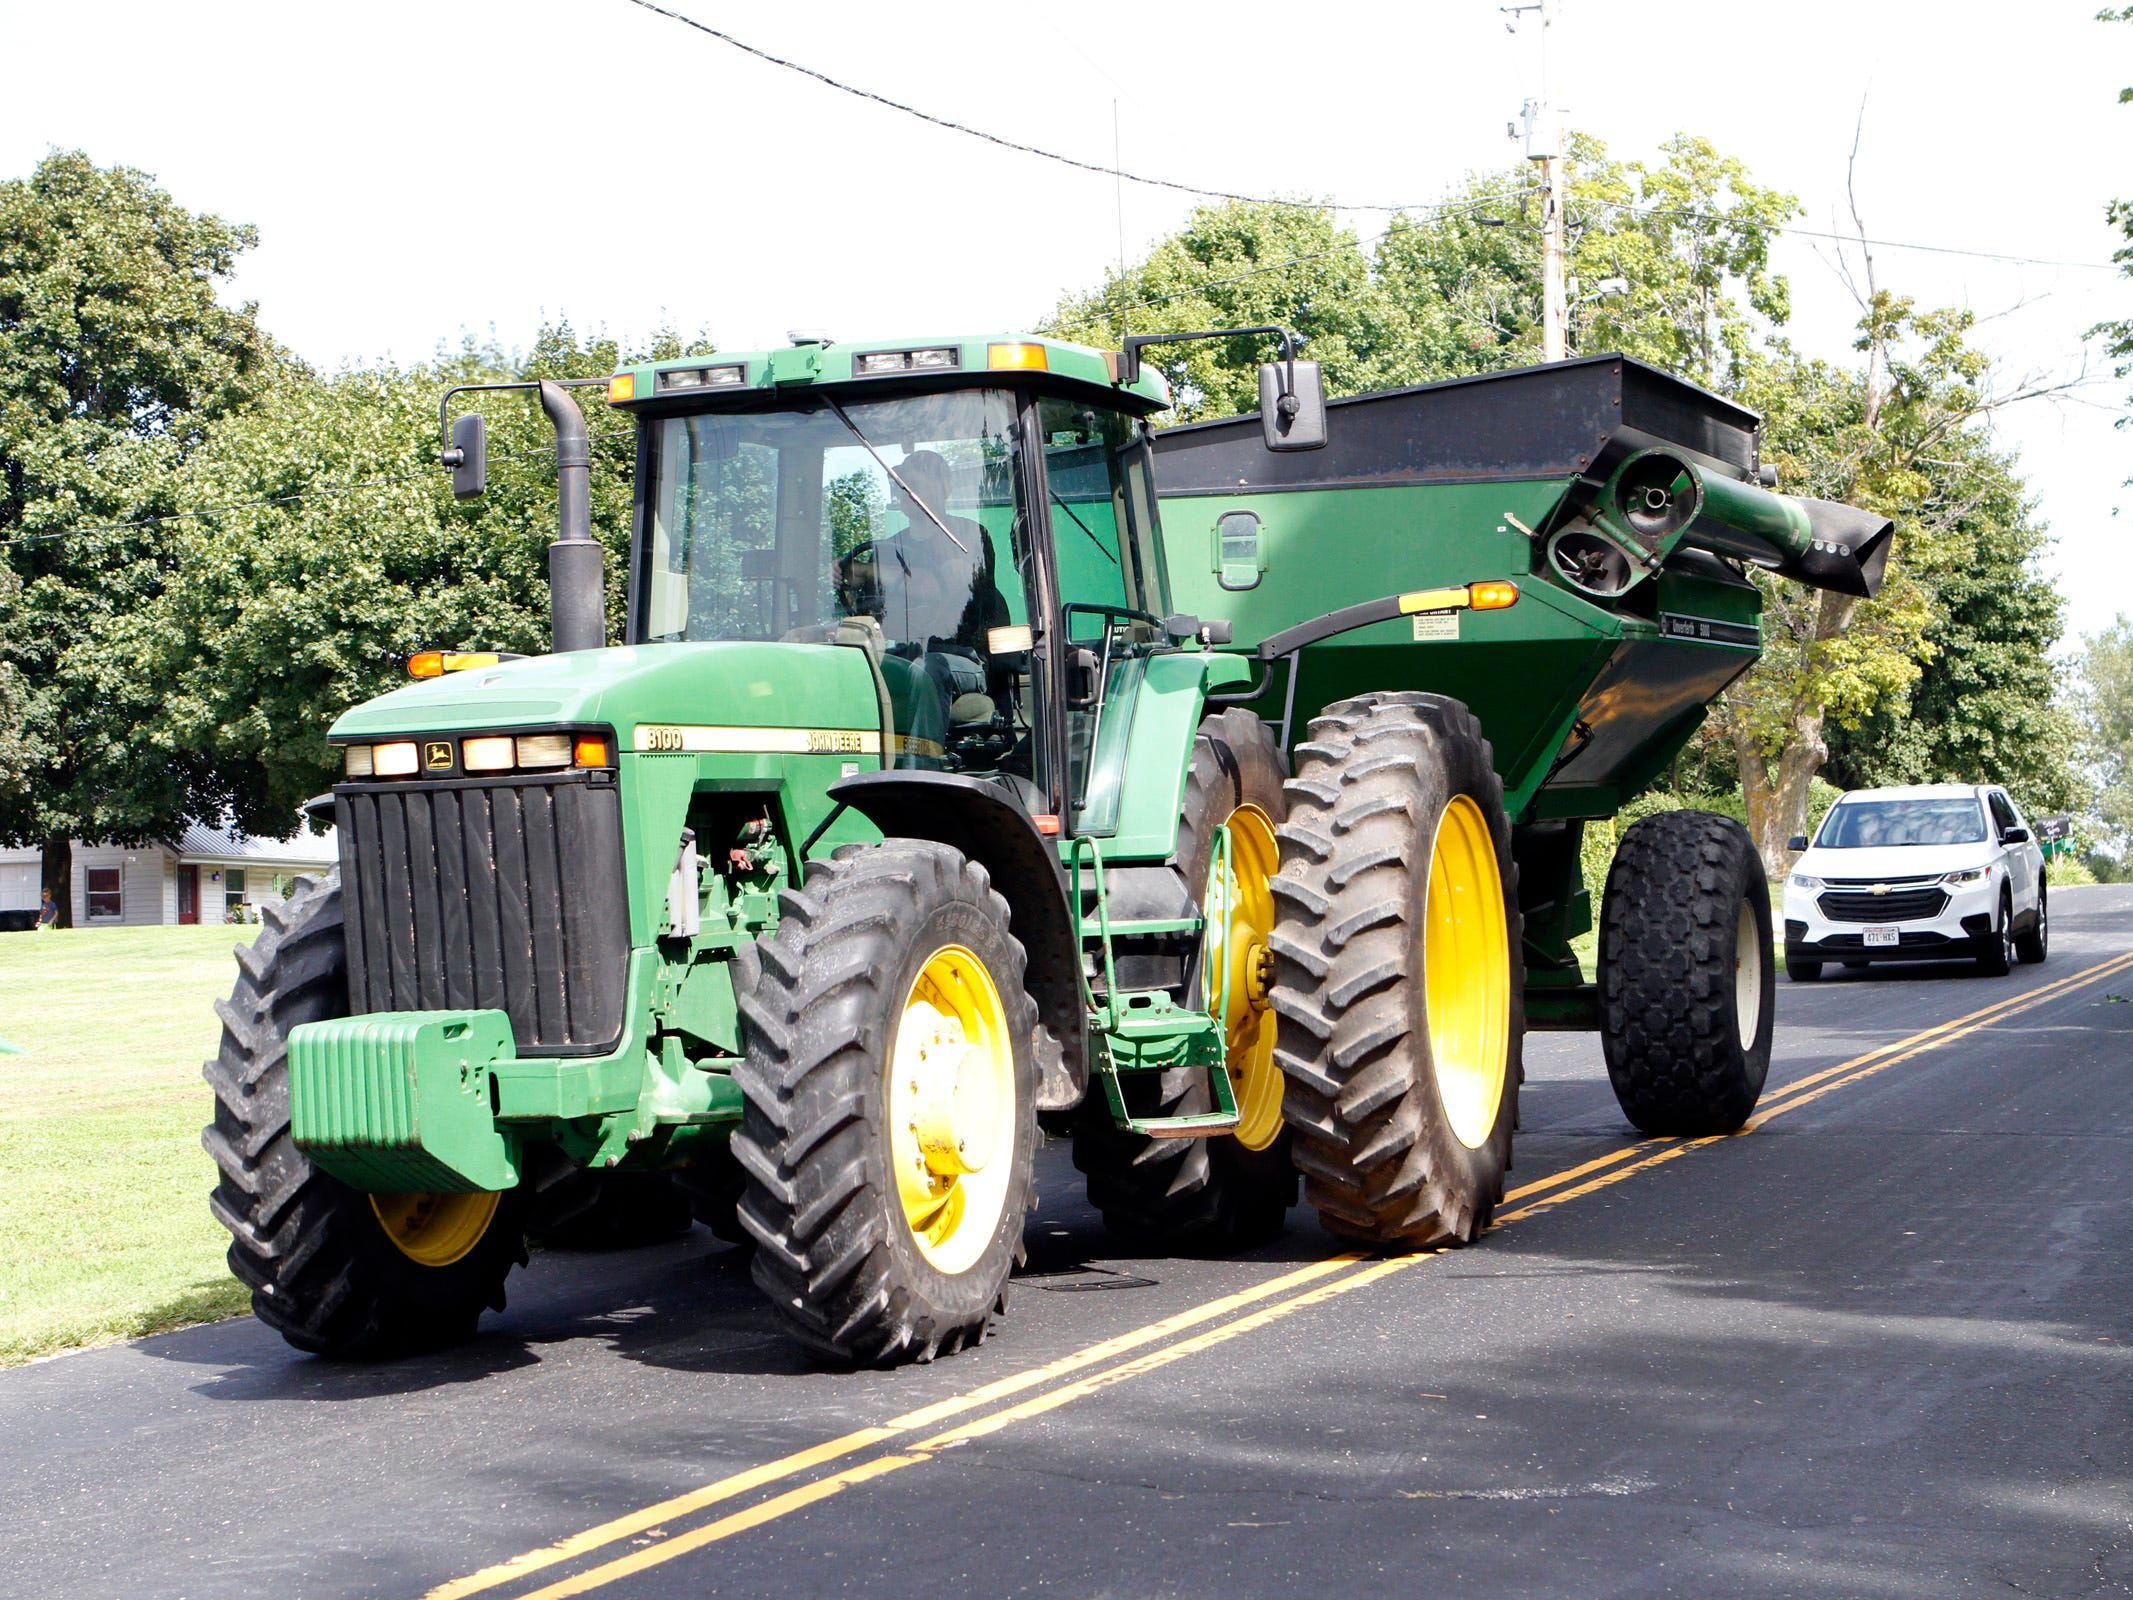 It is illegal to pass farm equipment in a no passing zone.